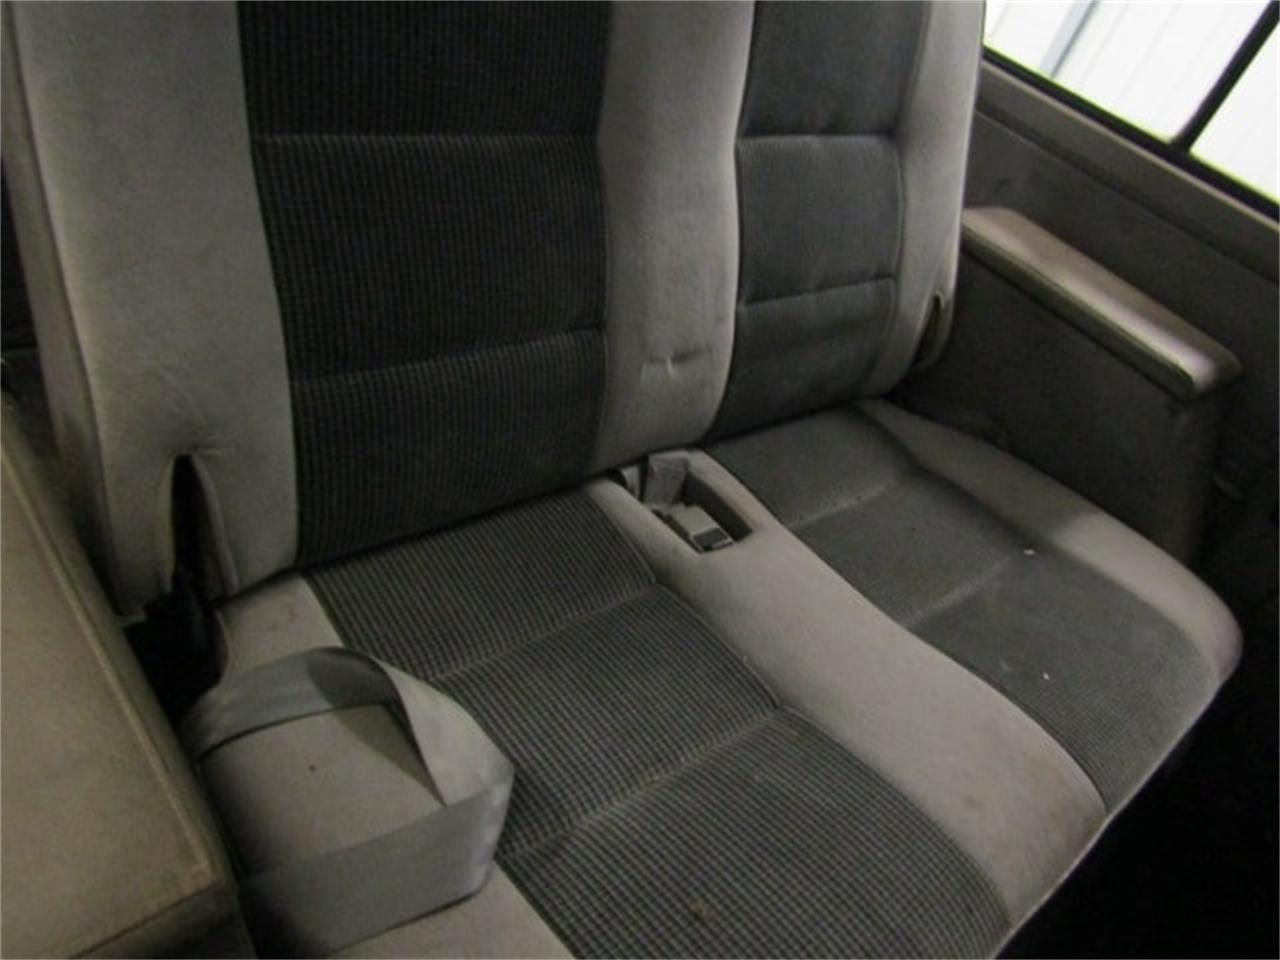 Large Picture of '88 Mitsubishi Pajero - $5,900.00 Offered by Duncan Imports & Classic Cars - JZKY